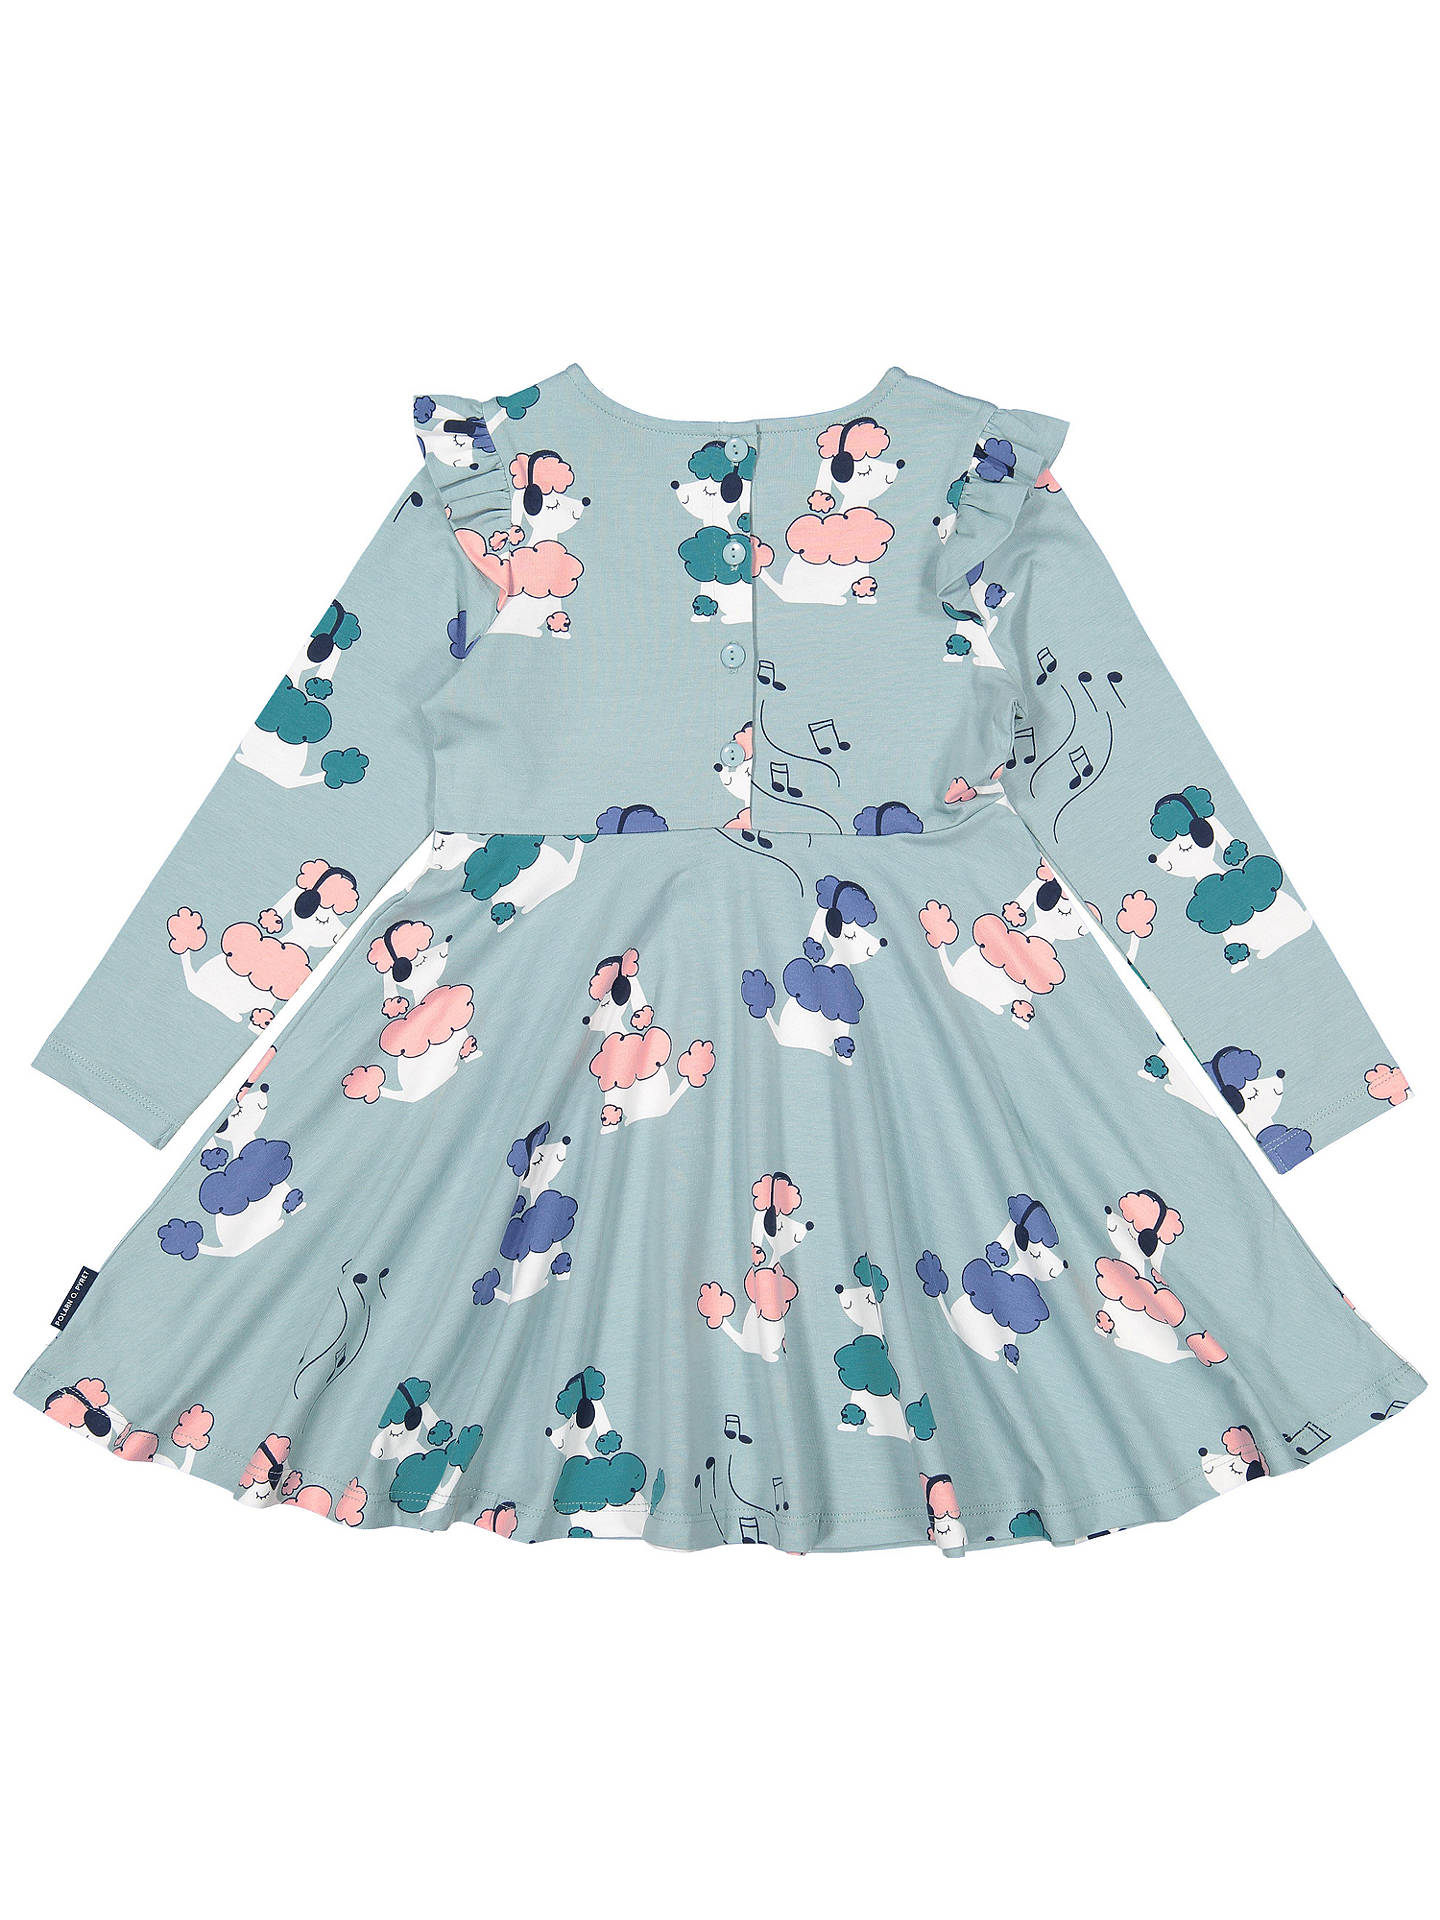 Buy Polarn O. Pyret Girls' Poodle Print Dress, Green, 3-4 years Online at johnlewis.com